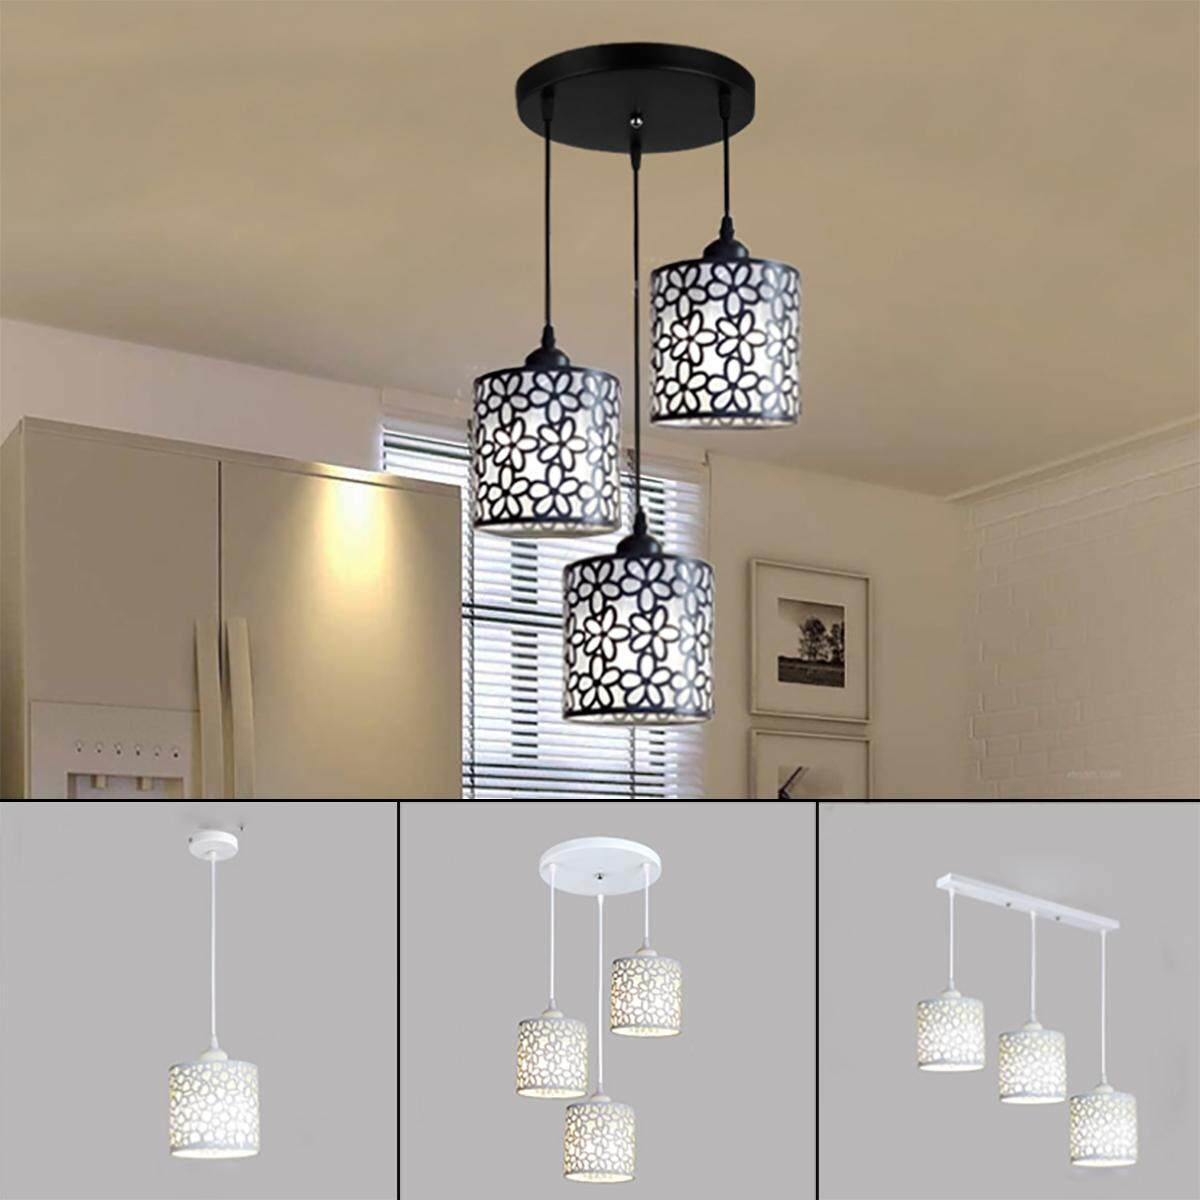 Modern flower petal ceiling light led pendant lamp dining room chandelier new 1 light round